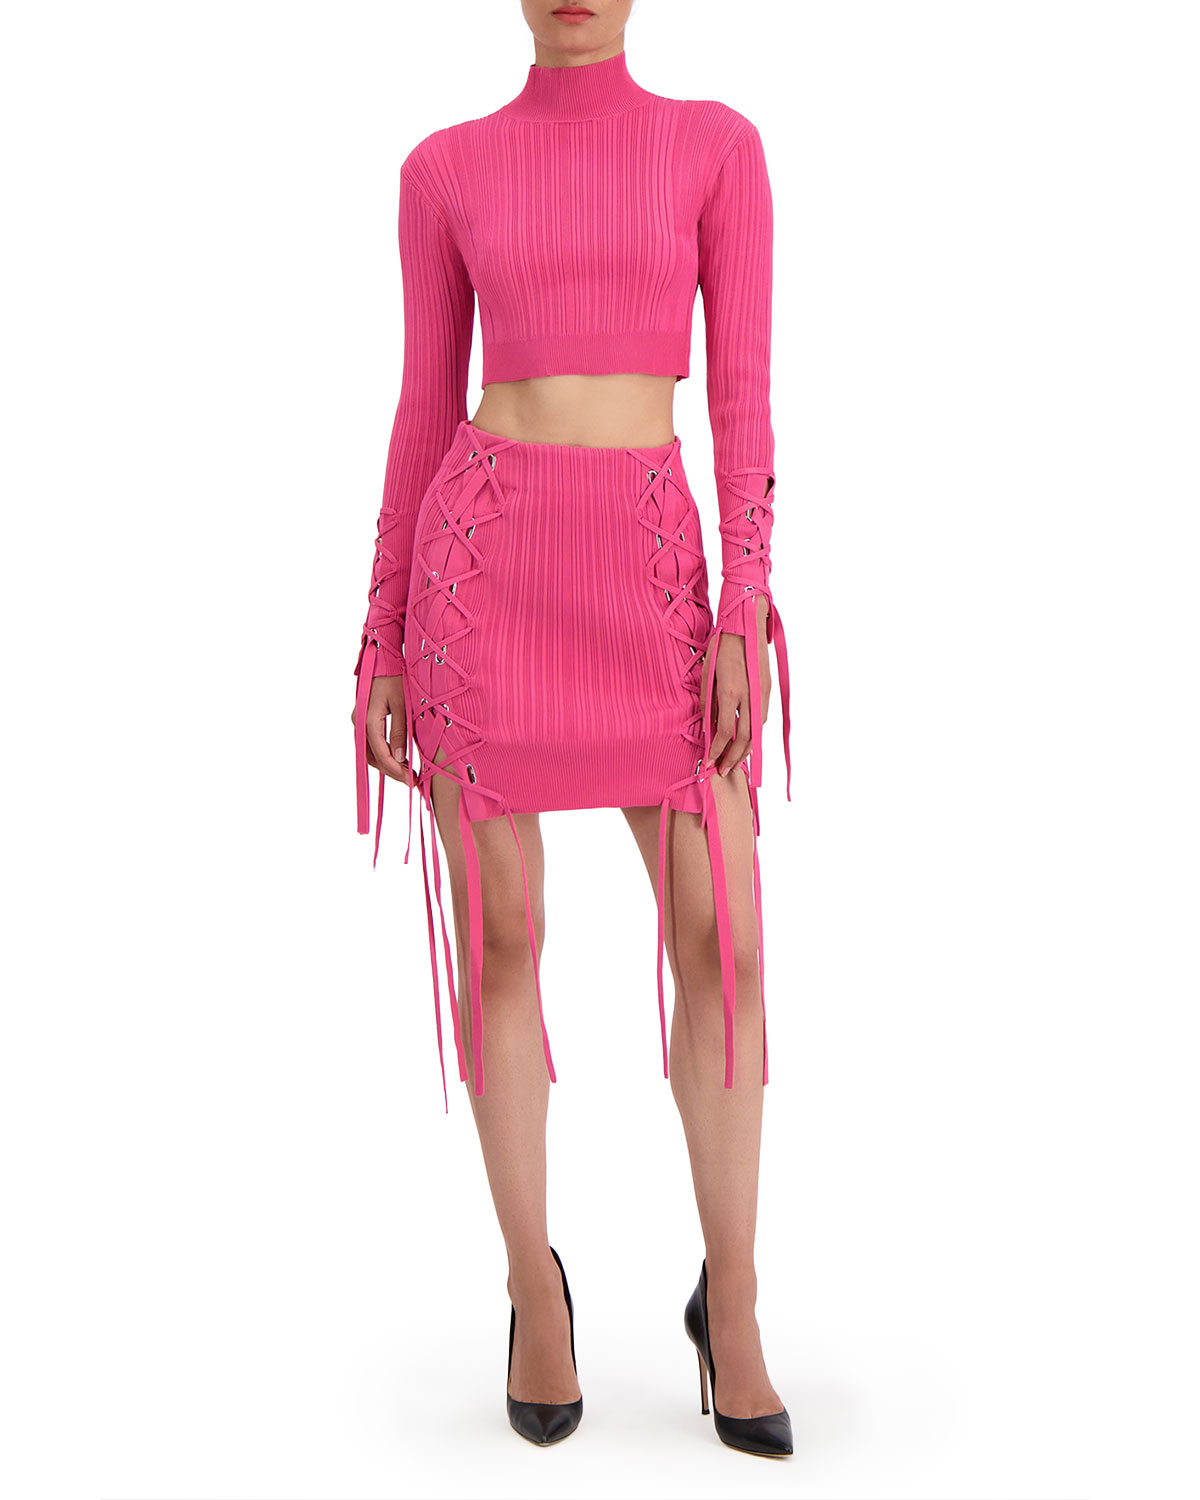 Variegated-Rib Lace-Up Crop Top